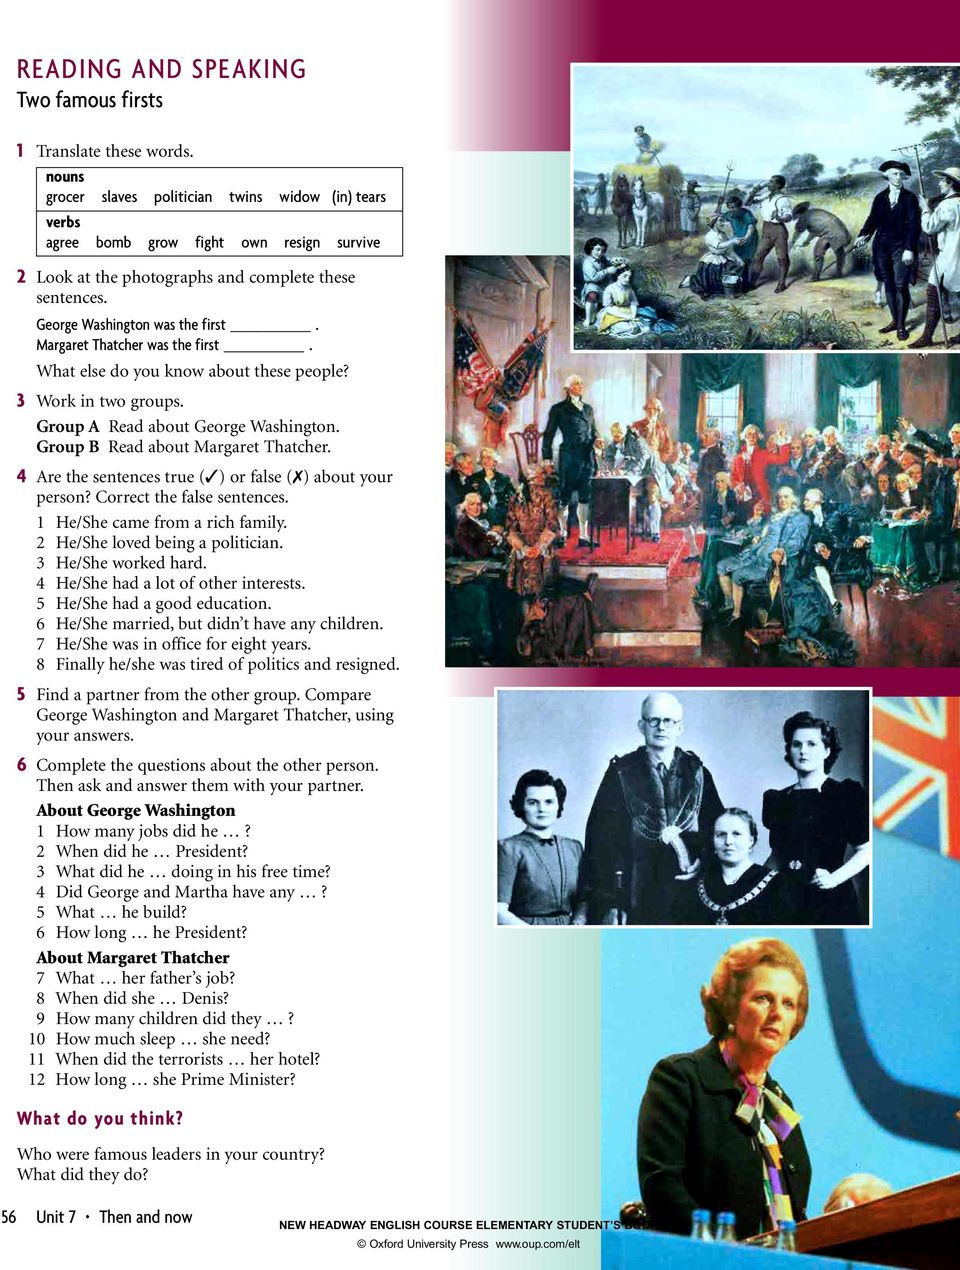 Margaret Thatcher was the first. What else do you know about these people? 3 Work in two groups. Group A Read about George Washington. Group B Read about Margaret Thatcher.